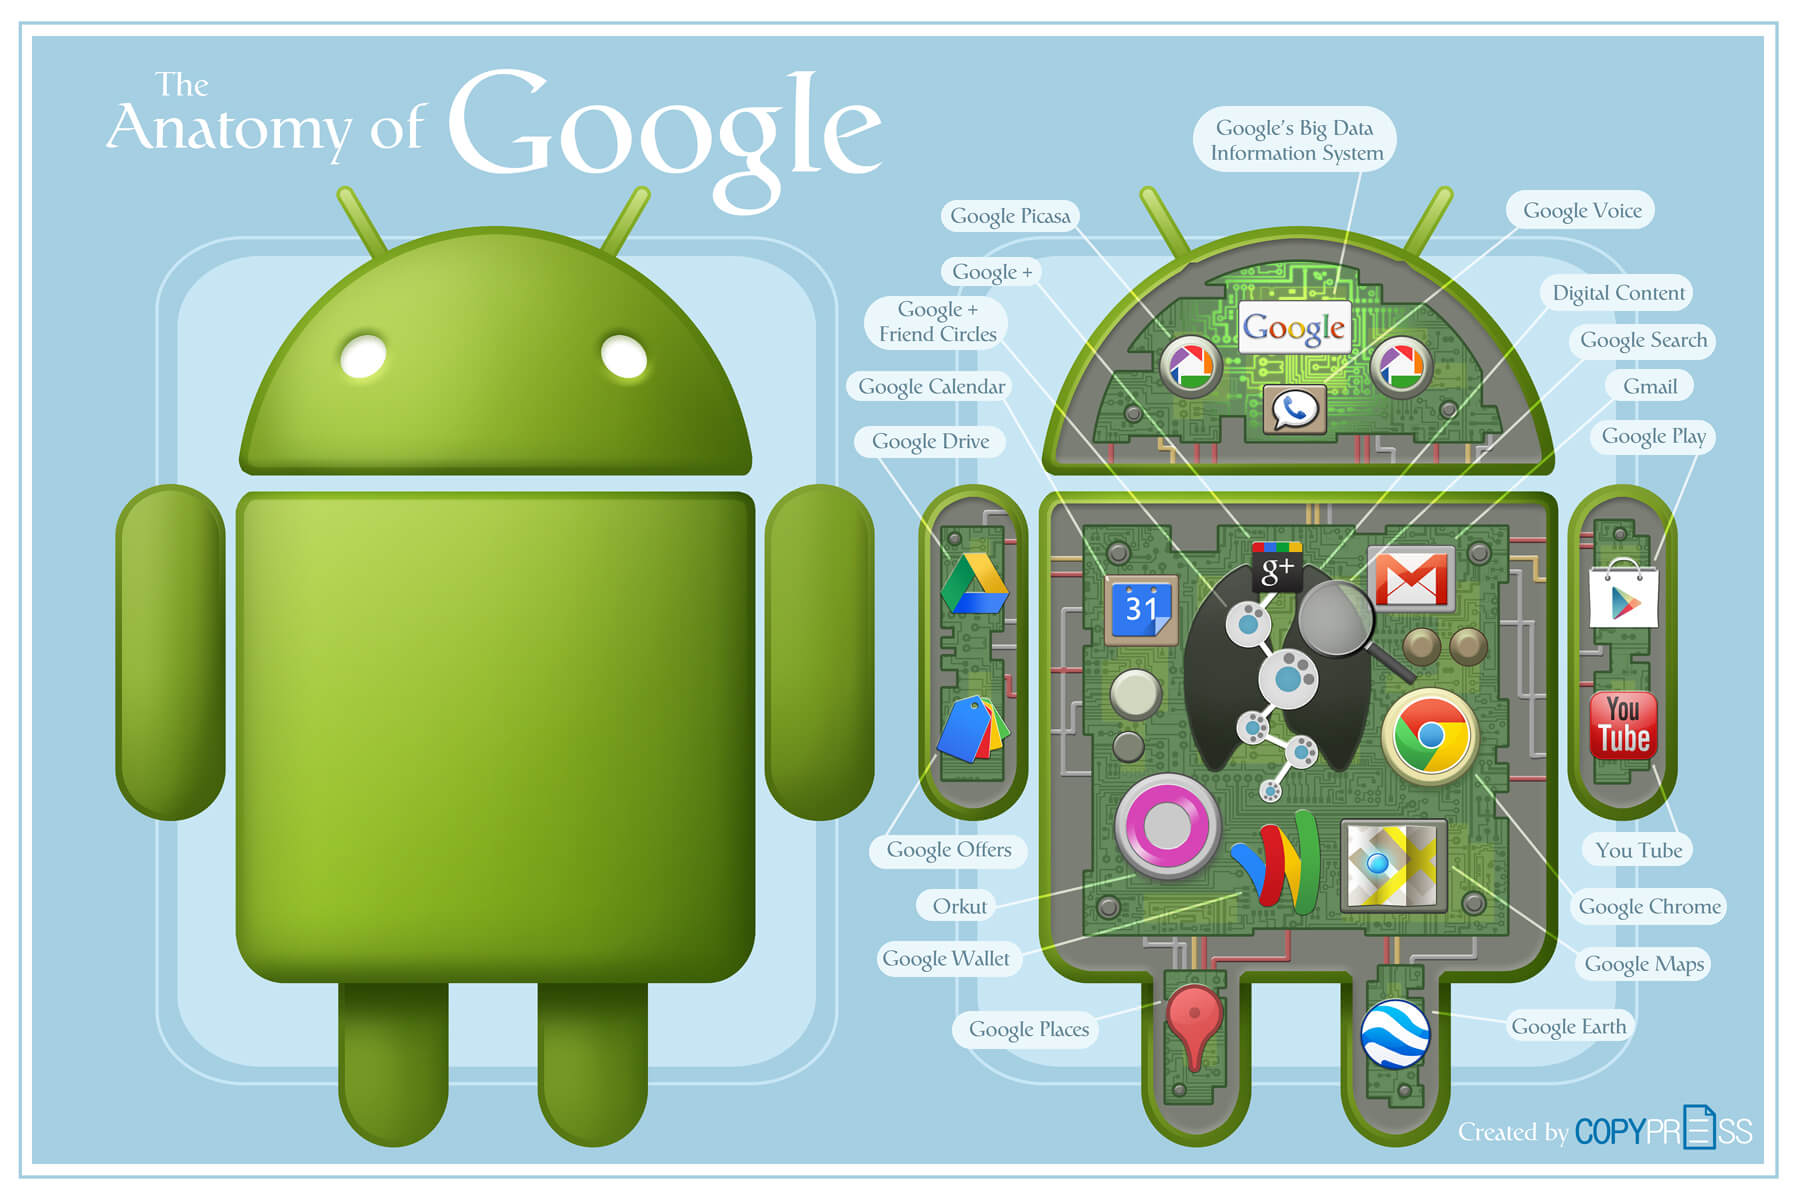 Google-Android-Be-Together-Not-The-Same-2.jpg